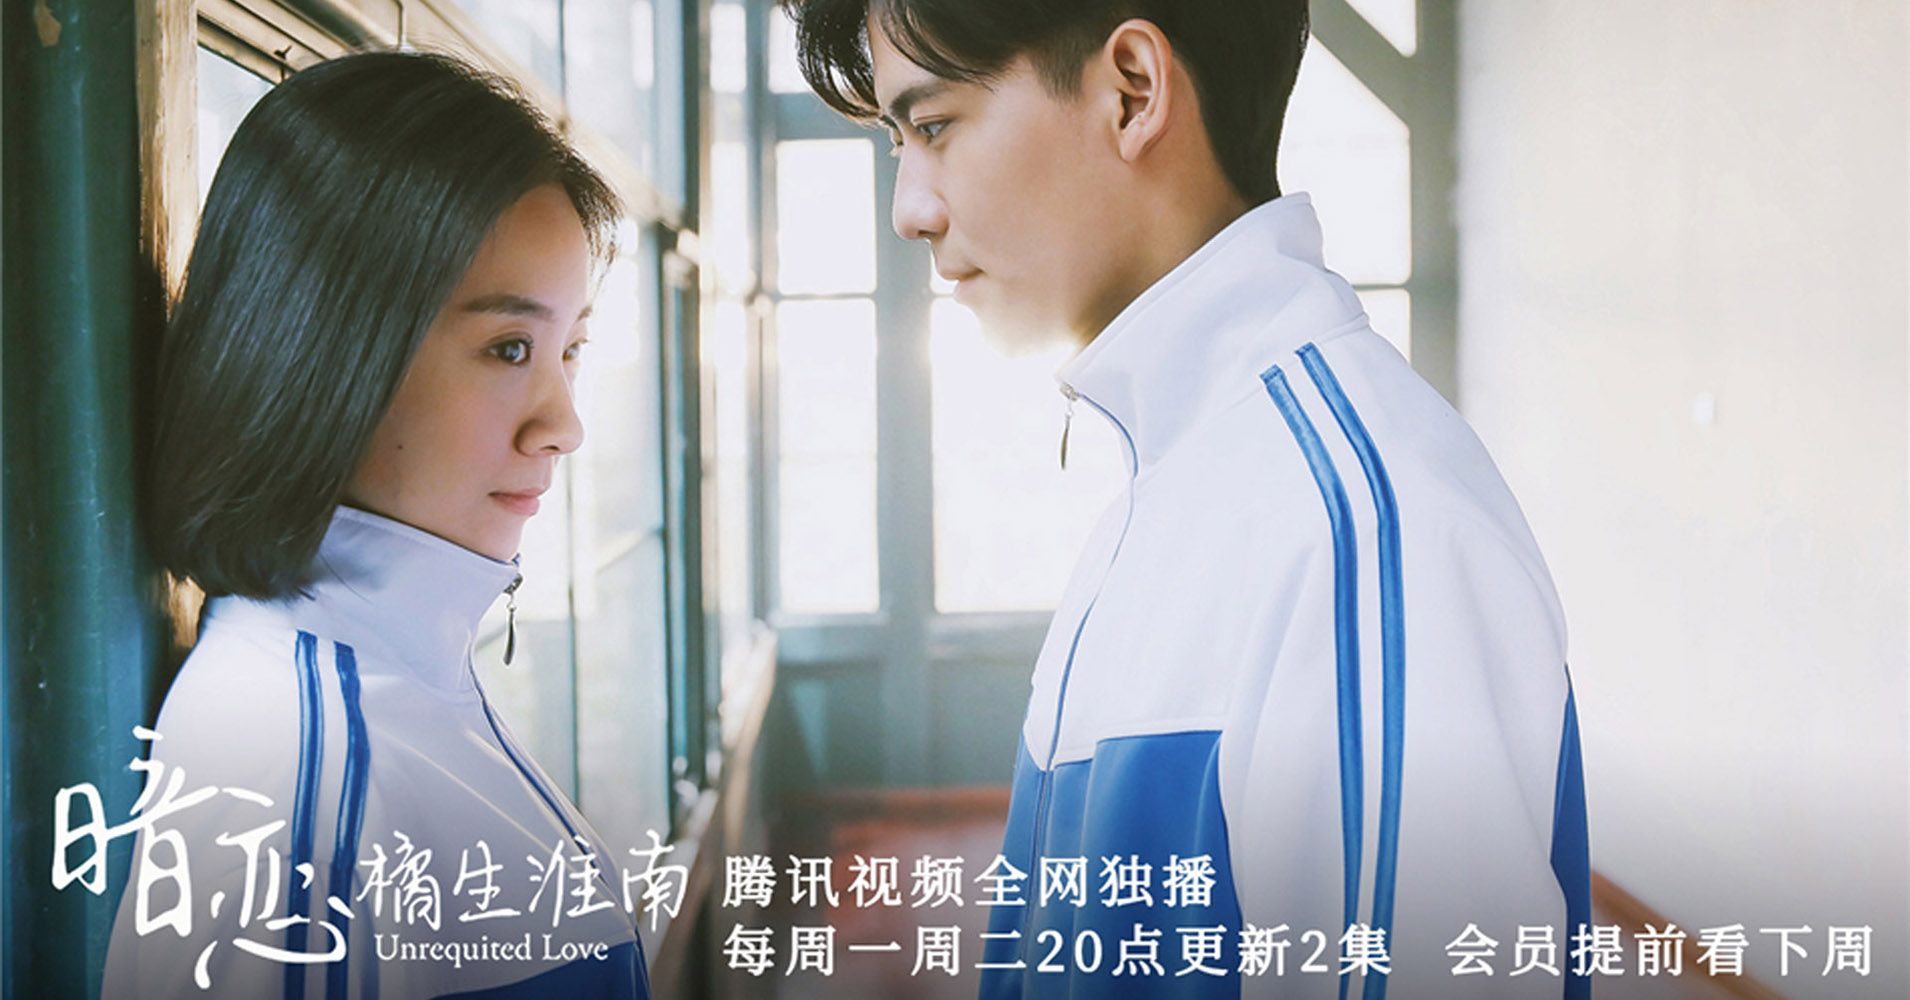 Review: Unrequited Love Episode 12